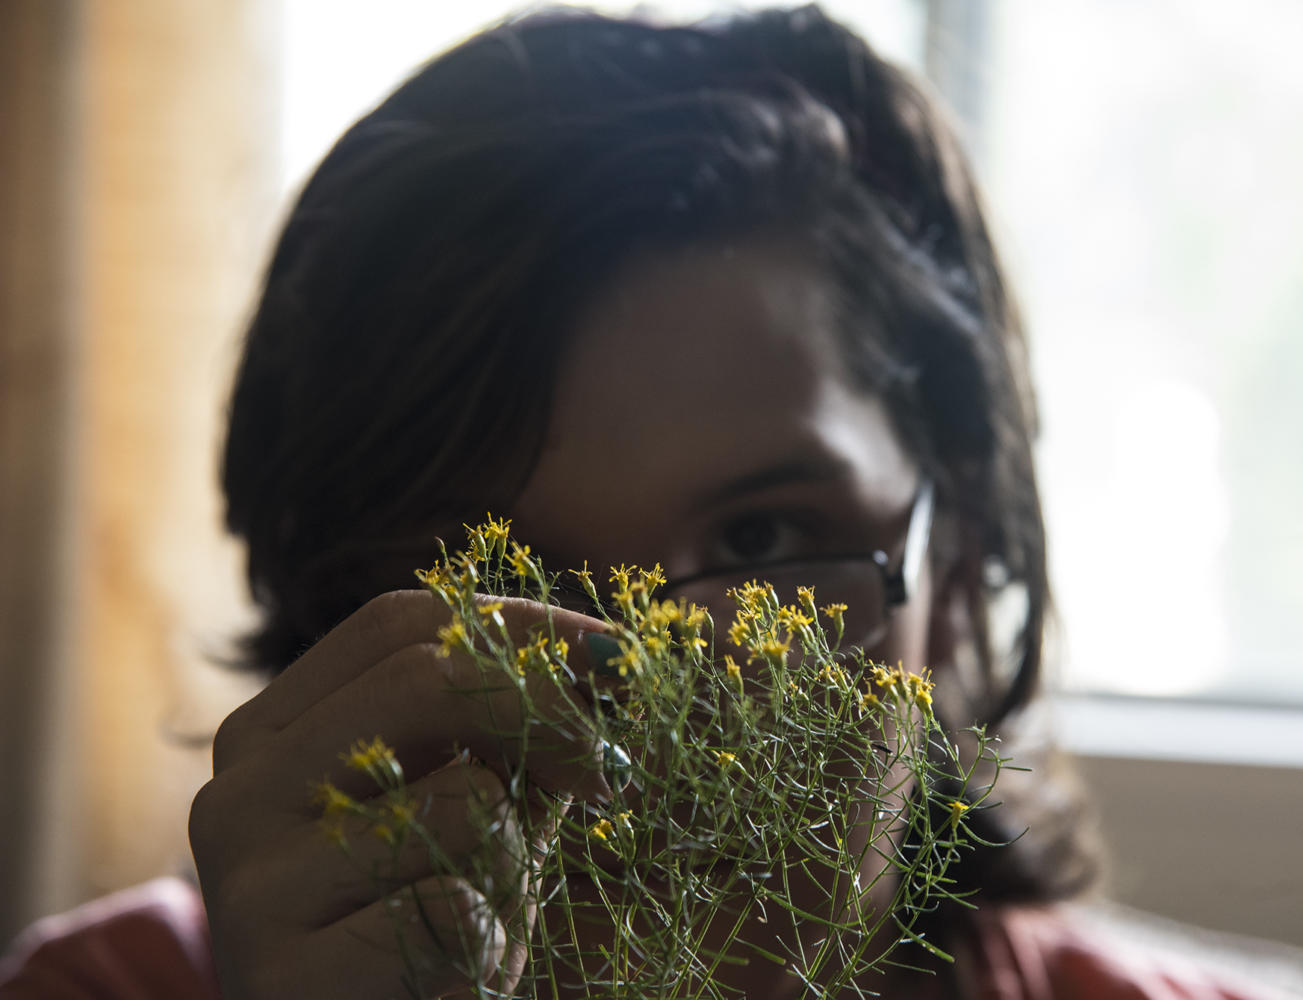 """Marisa Szubryt, a senior from Mokeno studying plant biology, examines the flower of a plant known as Euthamia Tuesday, Oct. 10, 2017, at her apartment in Carbondale. """"Working with the data has been really interesting in a way that I hadn't been exposed to before,"""" Szubryt said. """"That's all very exciting, being like, 'Okay, so this thing groups with this other thing, and oh, they look similar because of this and that's why."""" (Cory Ray  @coryray_de)"""